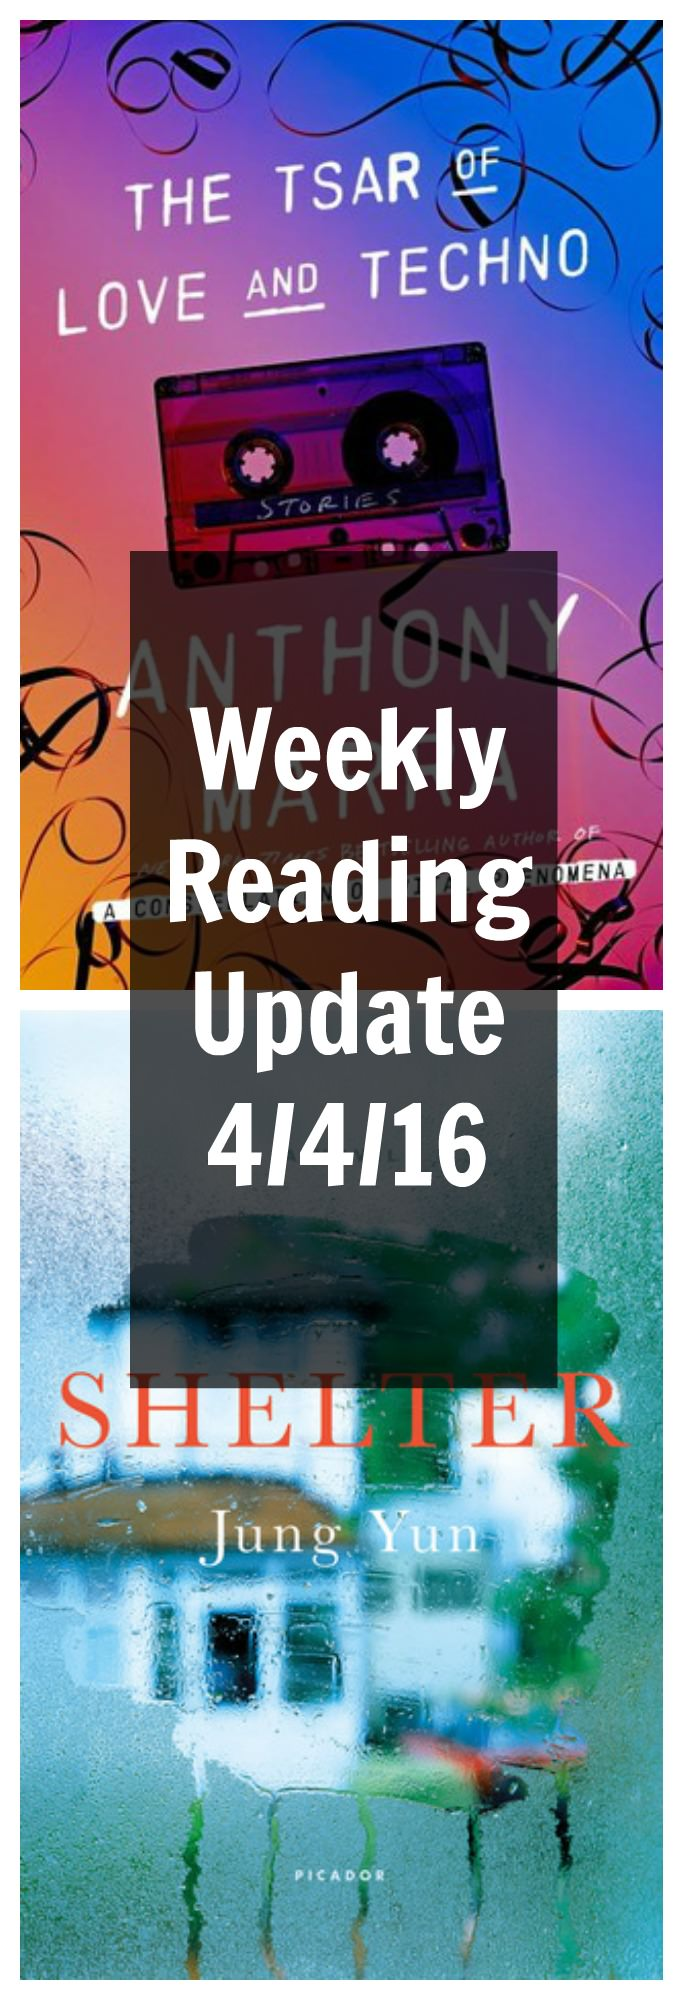 The backlist saved me last week...and I'm off to a promising start this week!